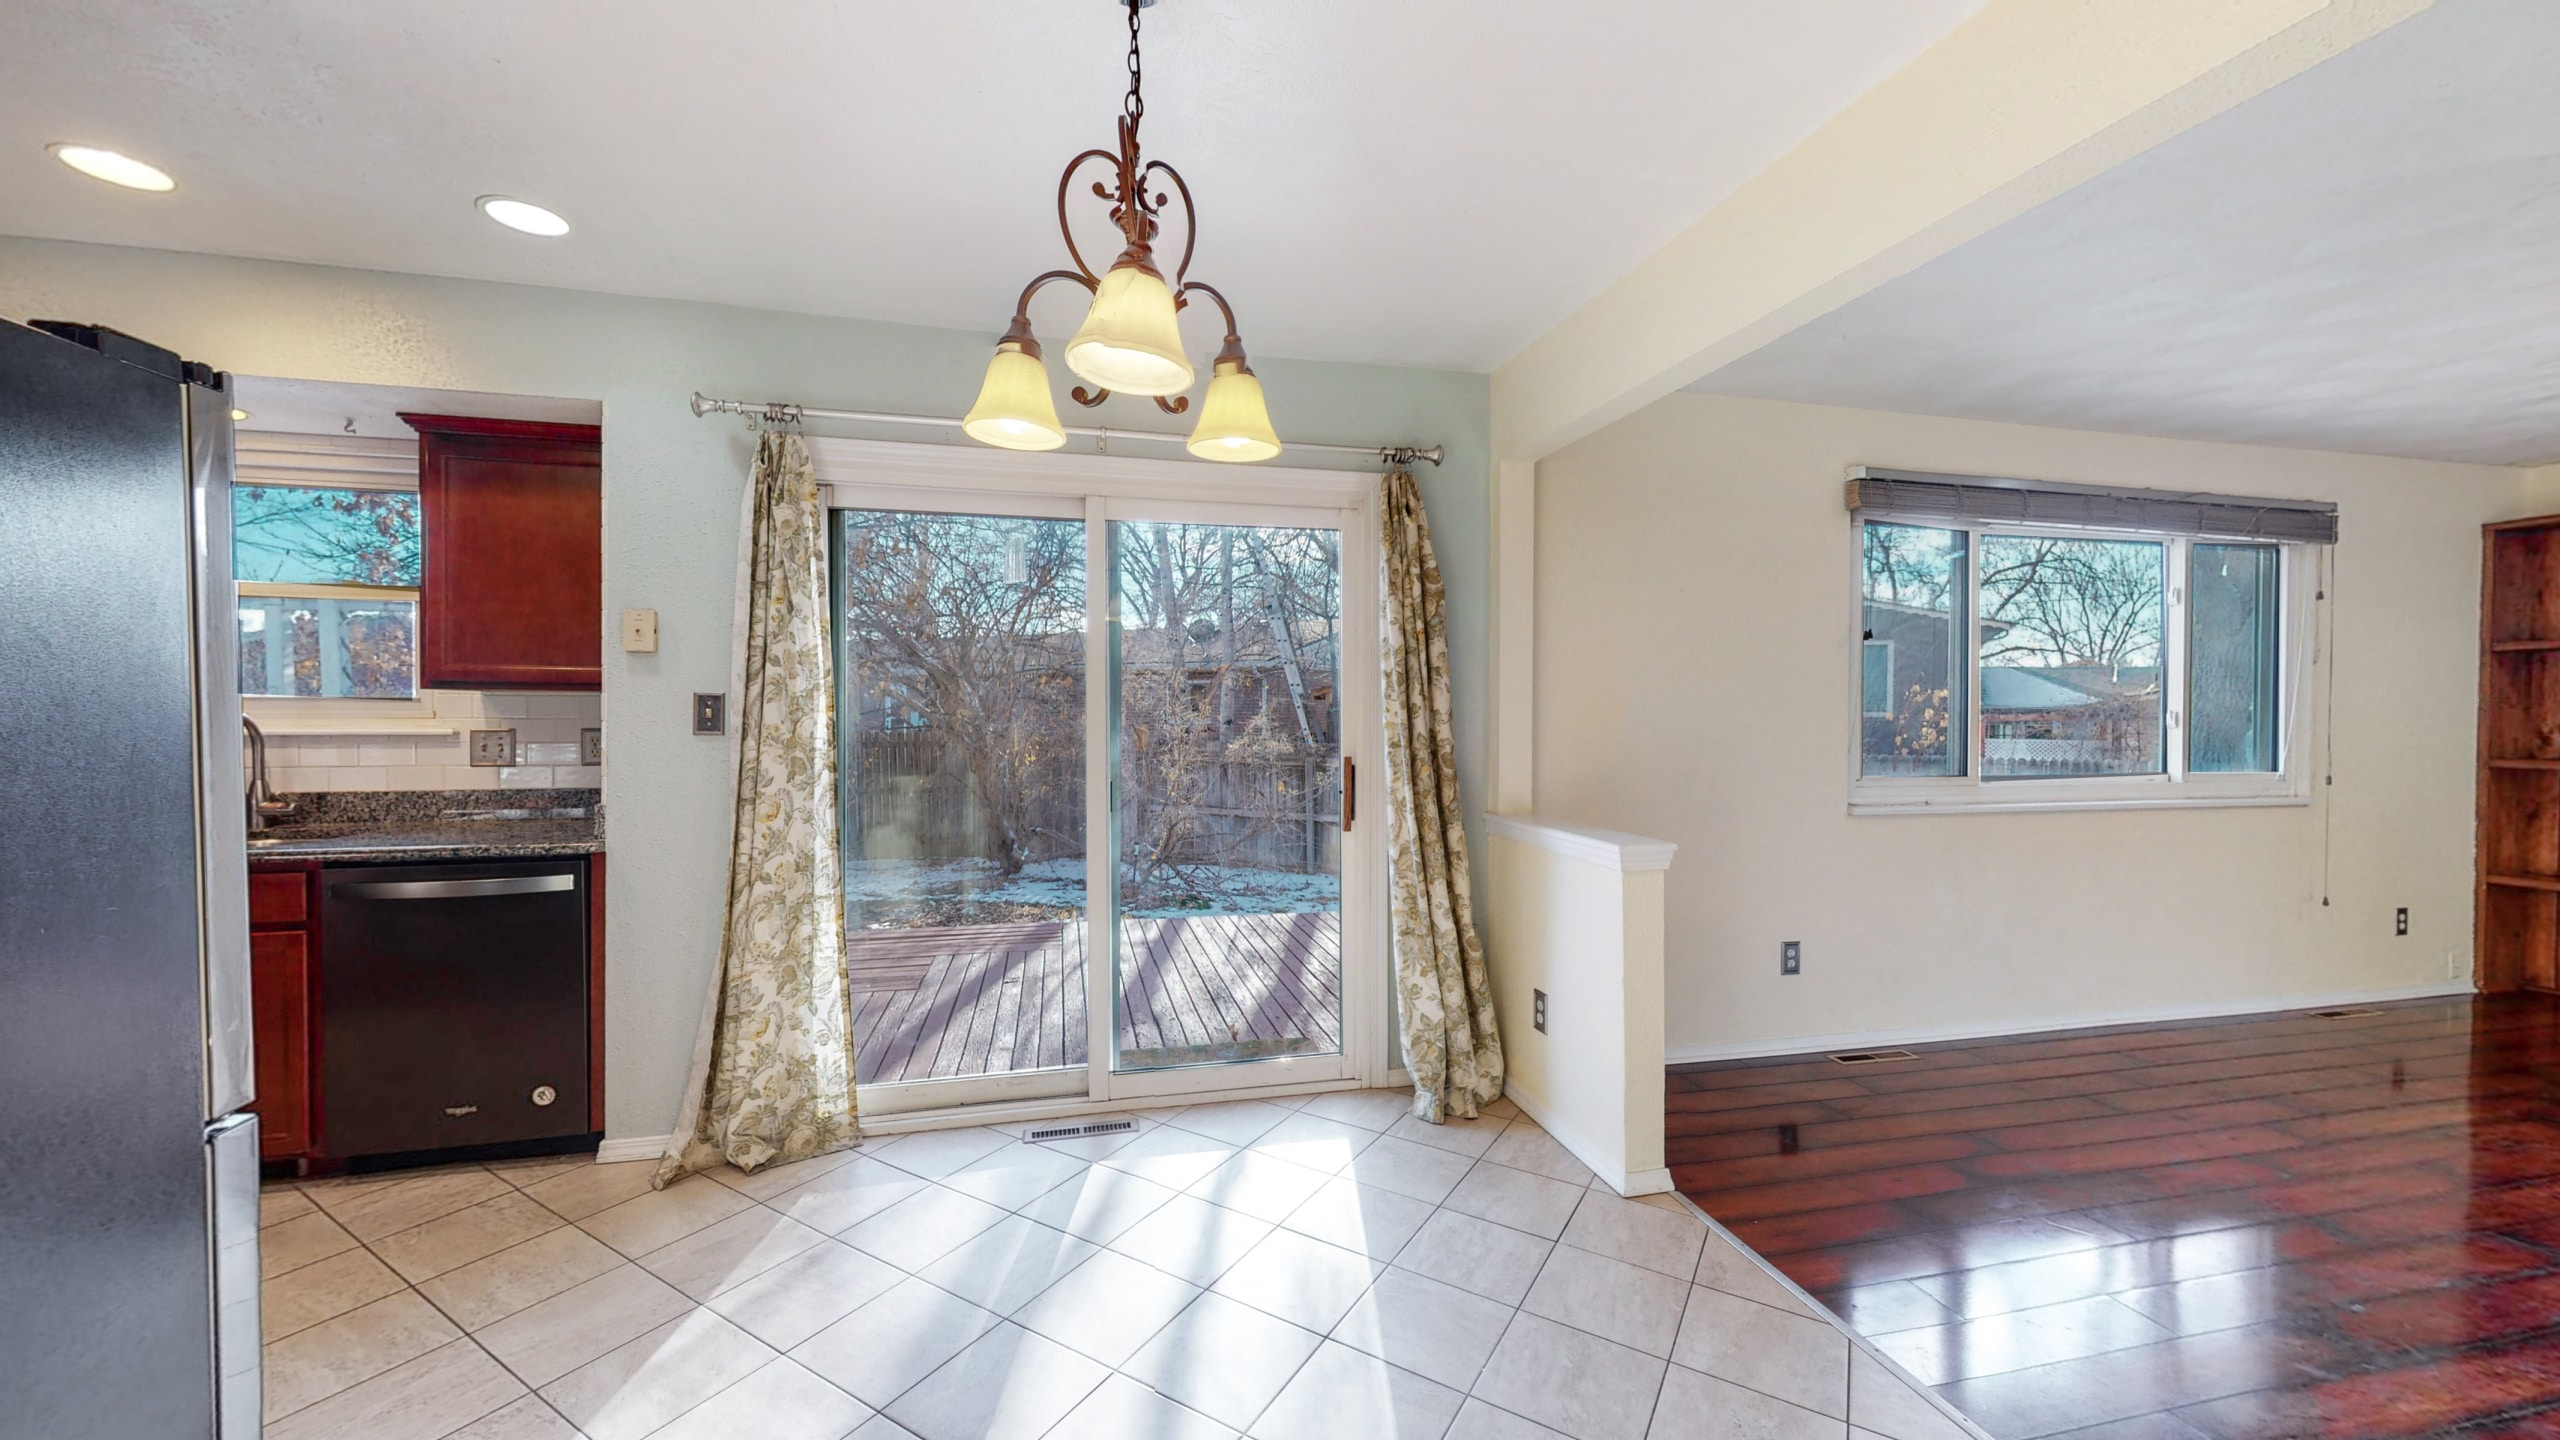 Brighton, CO home, dining room connect to back yard, sliding glass door